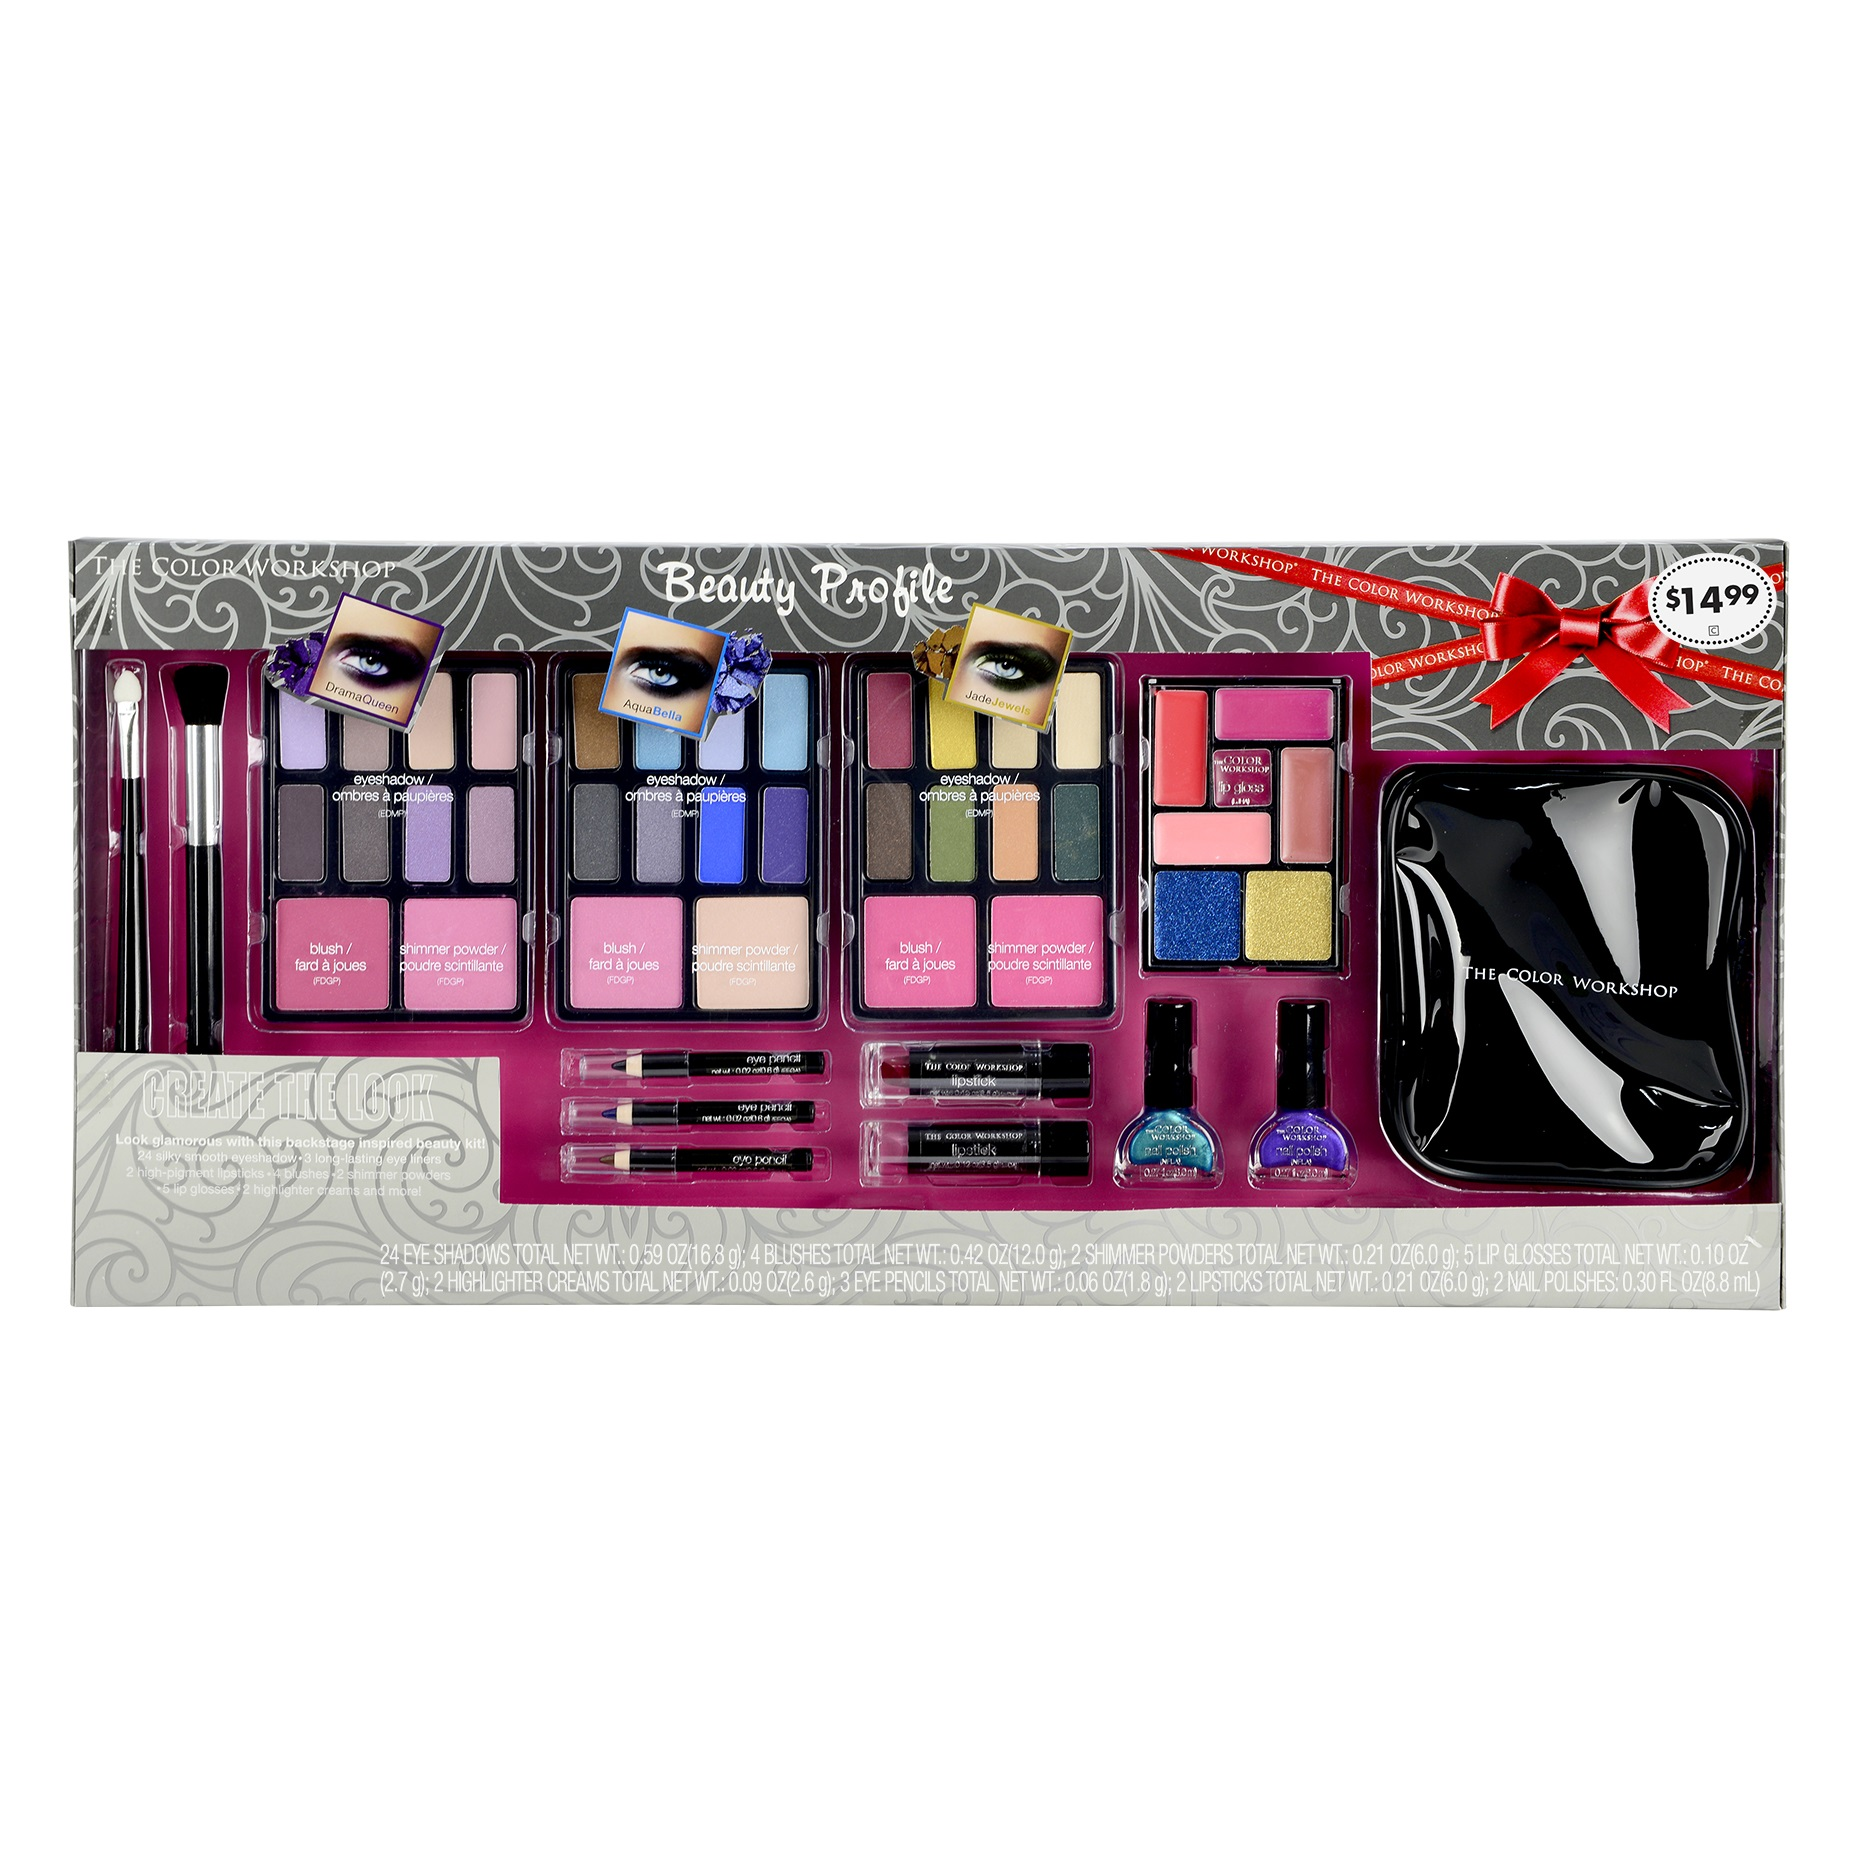 The Color Workshop Beauty Profile Makeup Kit